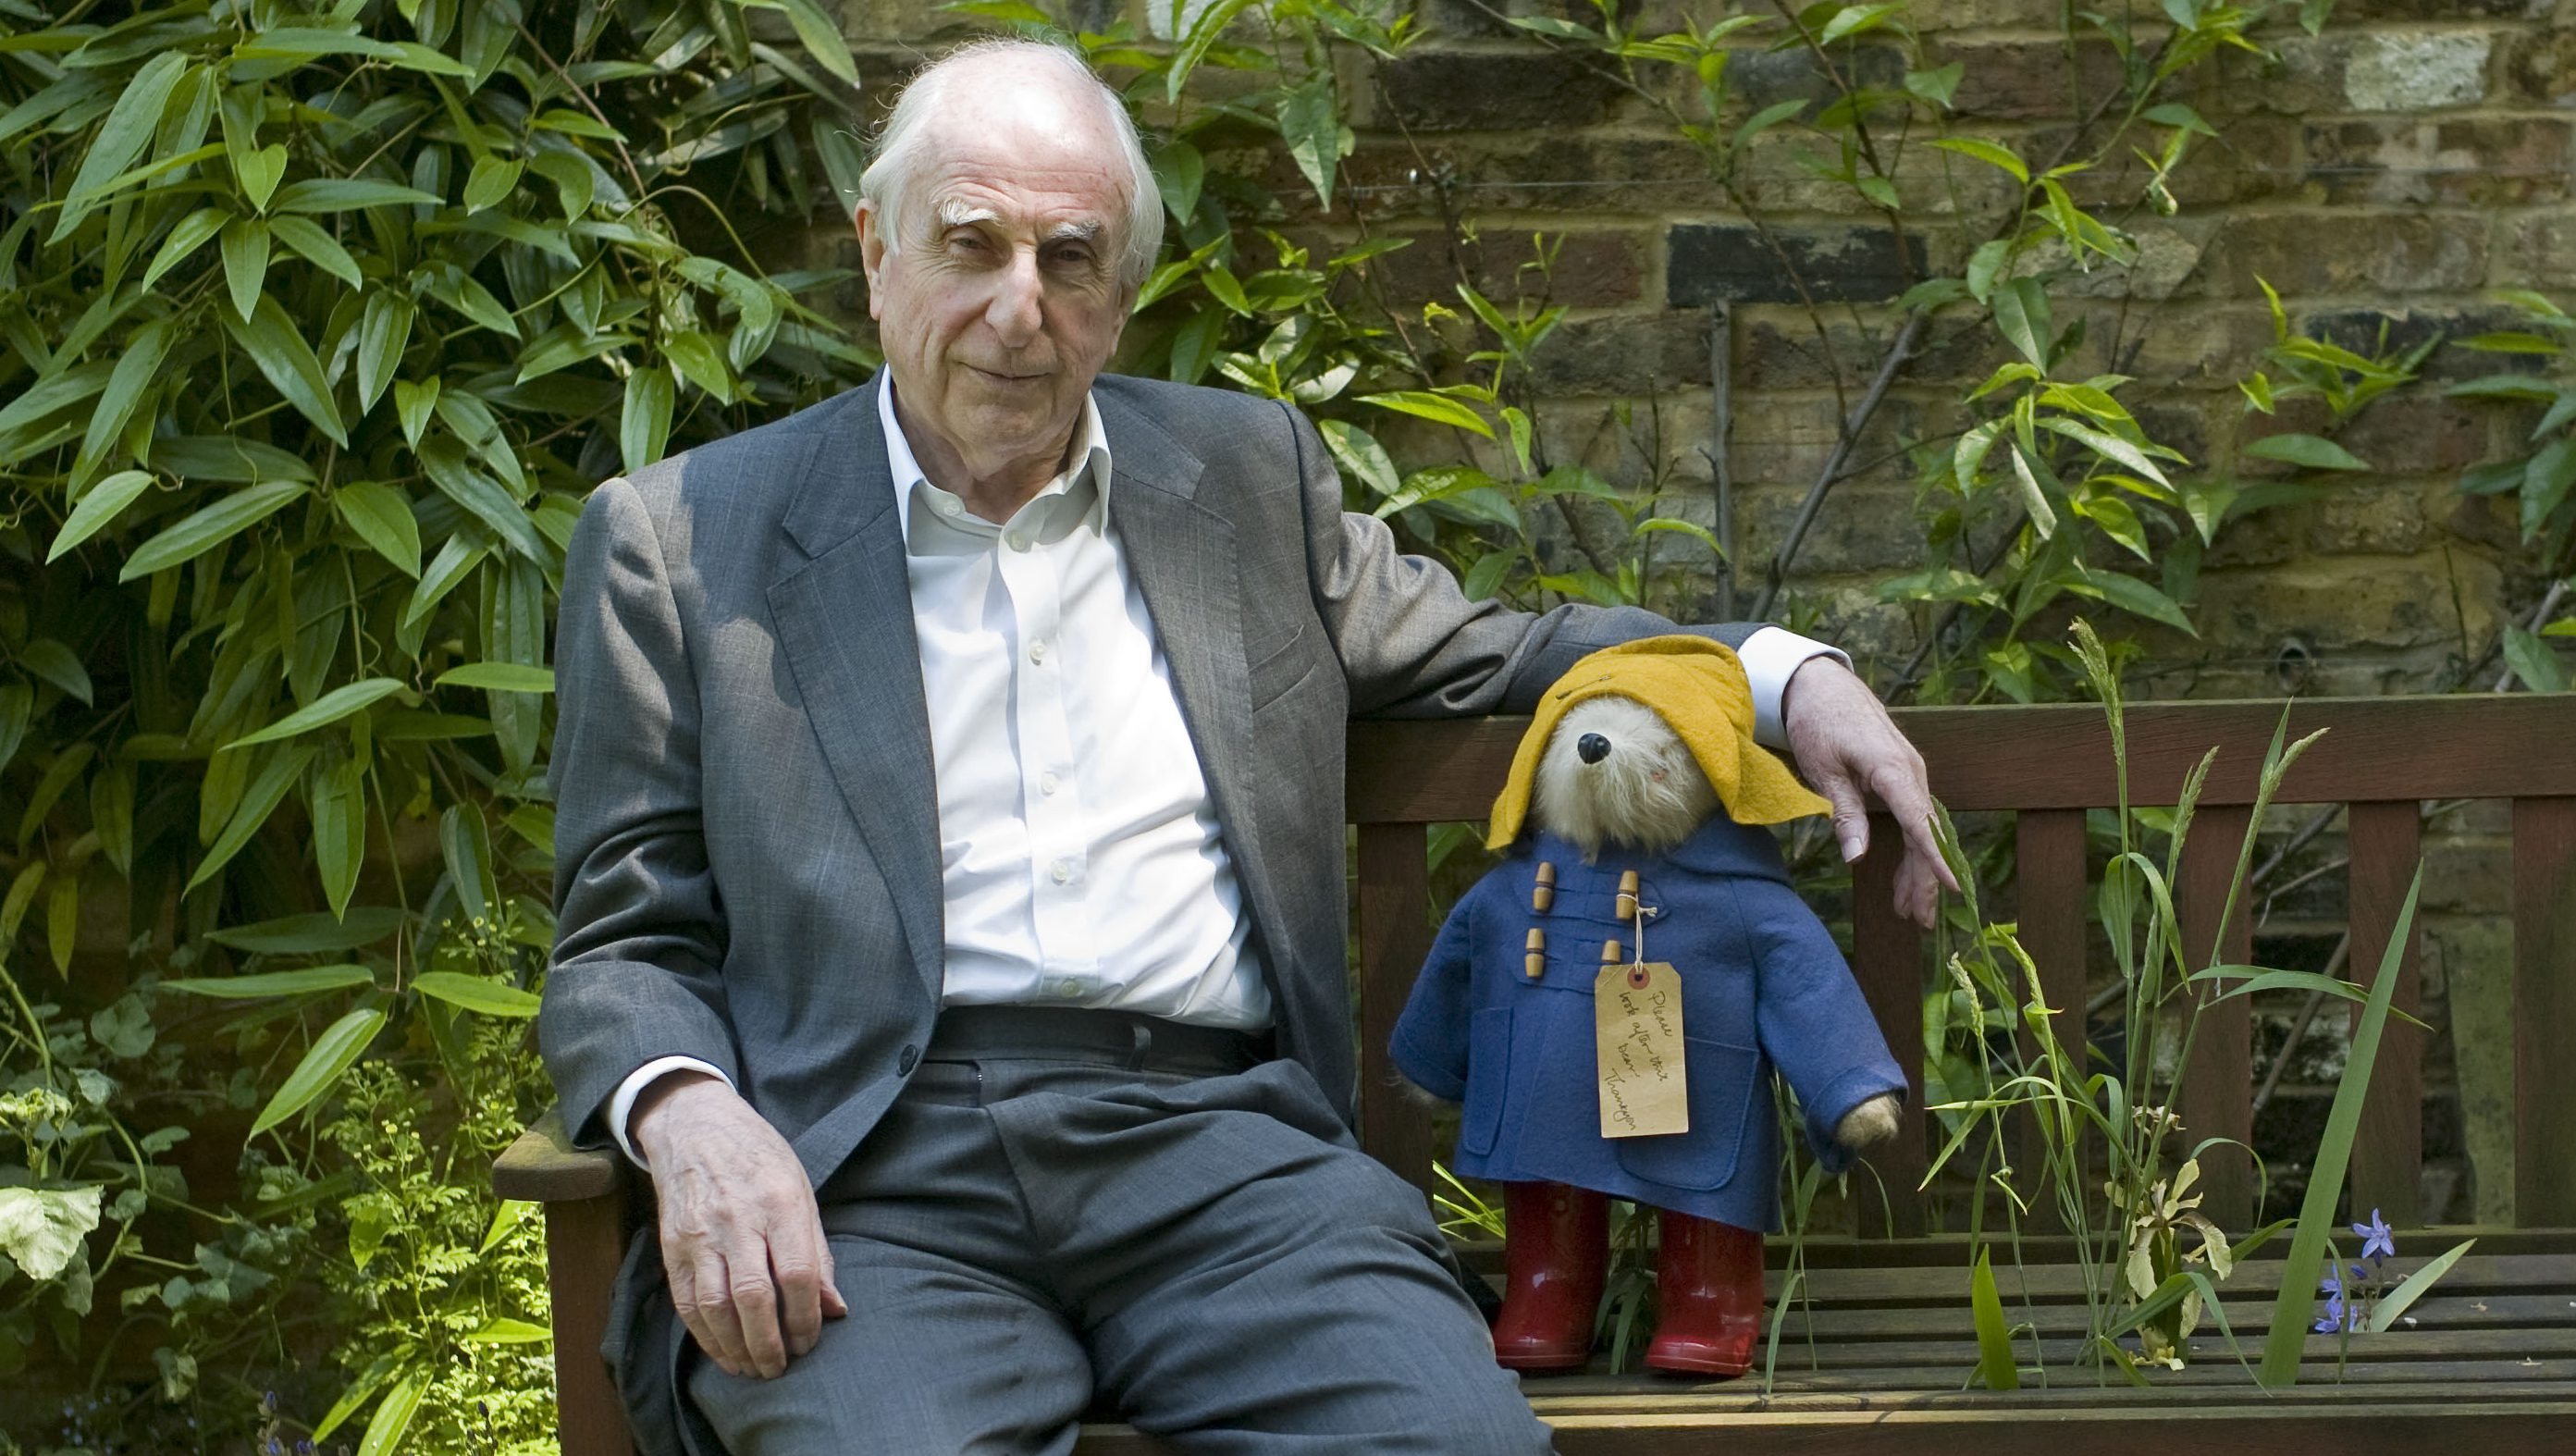 """British author Michael Bond sits with a Paddington Bear toy during an interview with The Associated Press in London, Thursday, June 5, 2008. Paddington Bear's first adventure appeared in print 50 years ago, and author Michael Bond is celebrating the milestone with a new adventure for the beloved bear, """"Paddington, Here and Now."""" (AP Photo/Sang Tan)"""